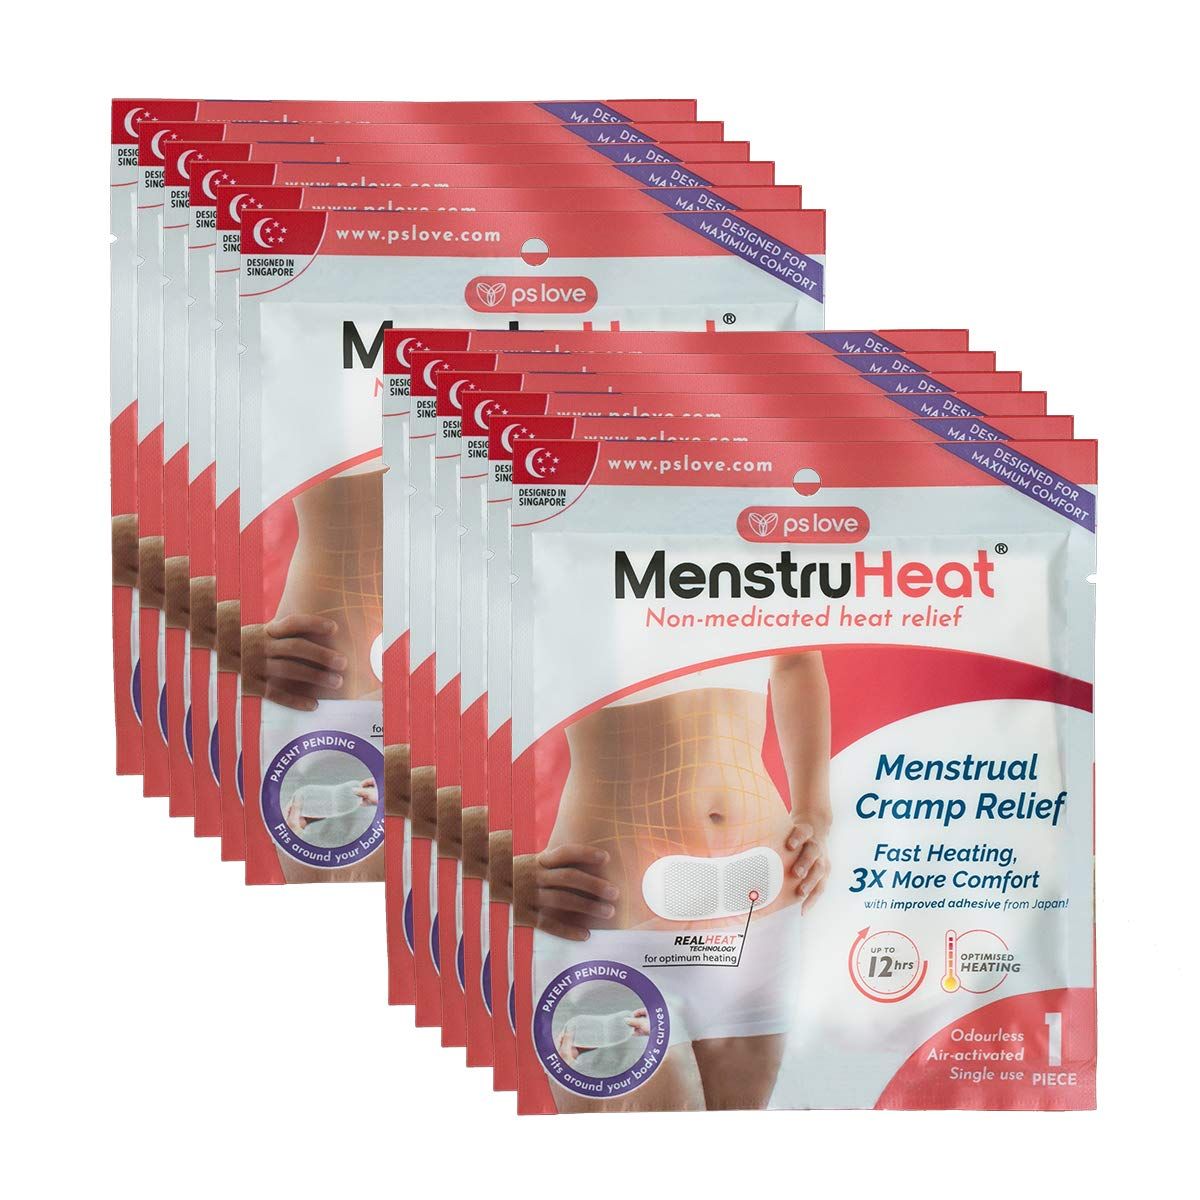 MenstruHeat Heating Pad for Menstrual Cramp Relief and PMS Comfort from Period Pain - Pack of 12 (patches/wraps/pads) by MenstruHeat